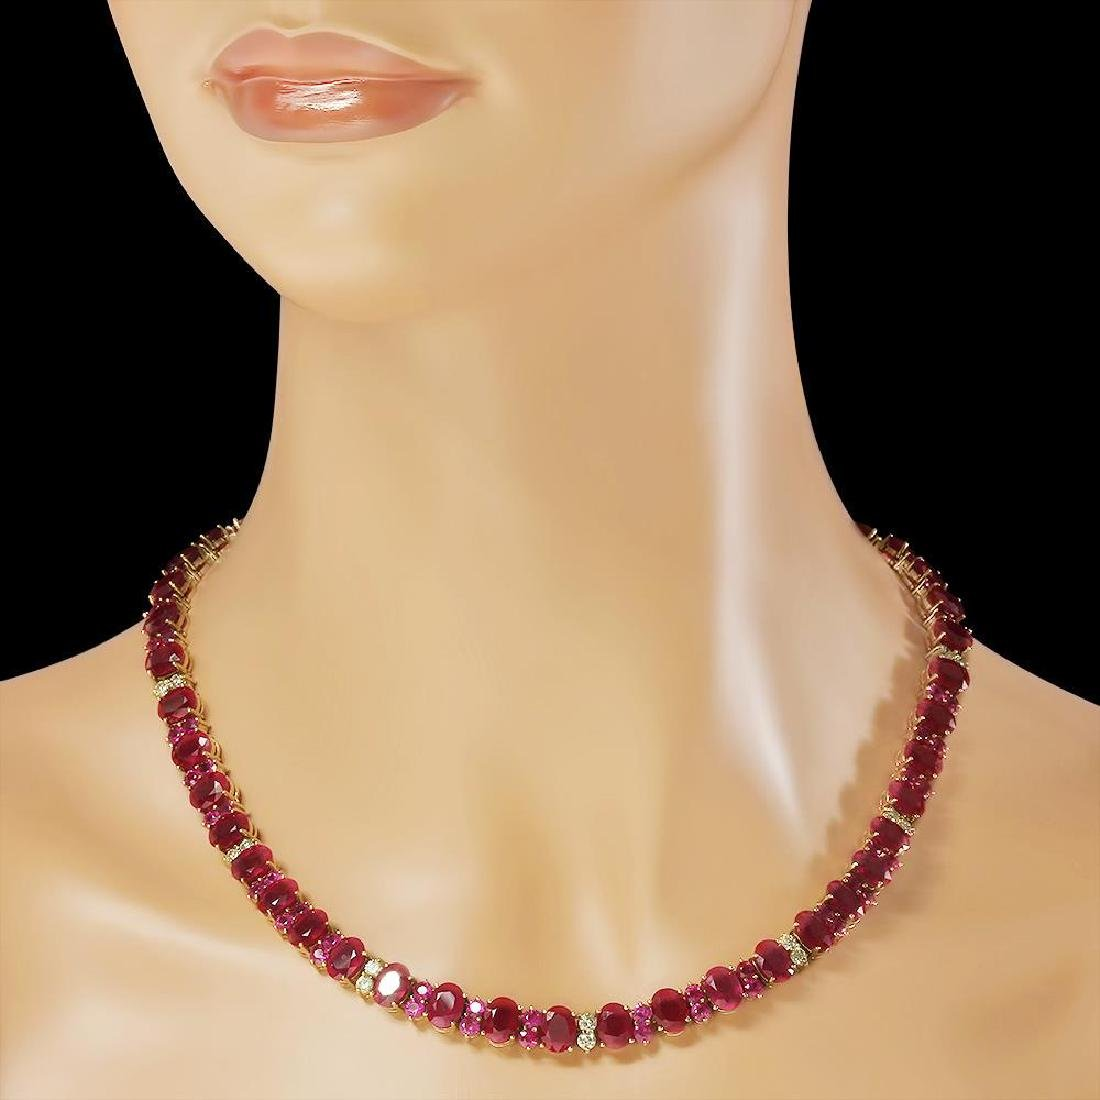 14K Gold 95.98ct Ruby 2.56ct Diamond Necklace - 3